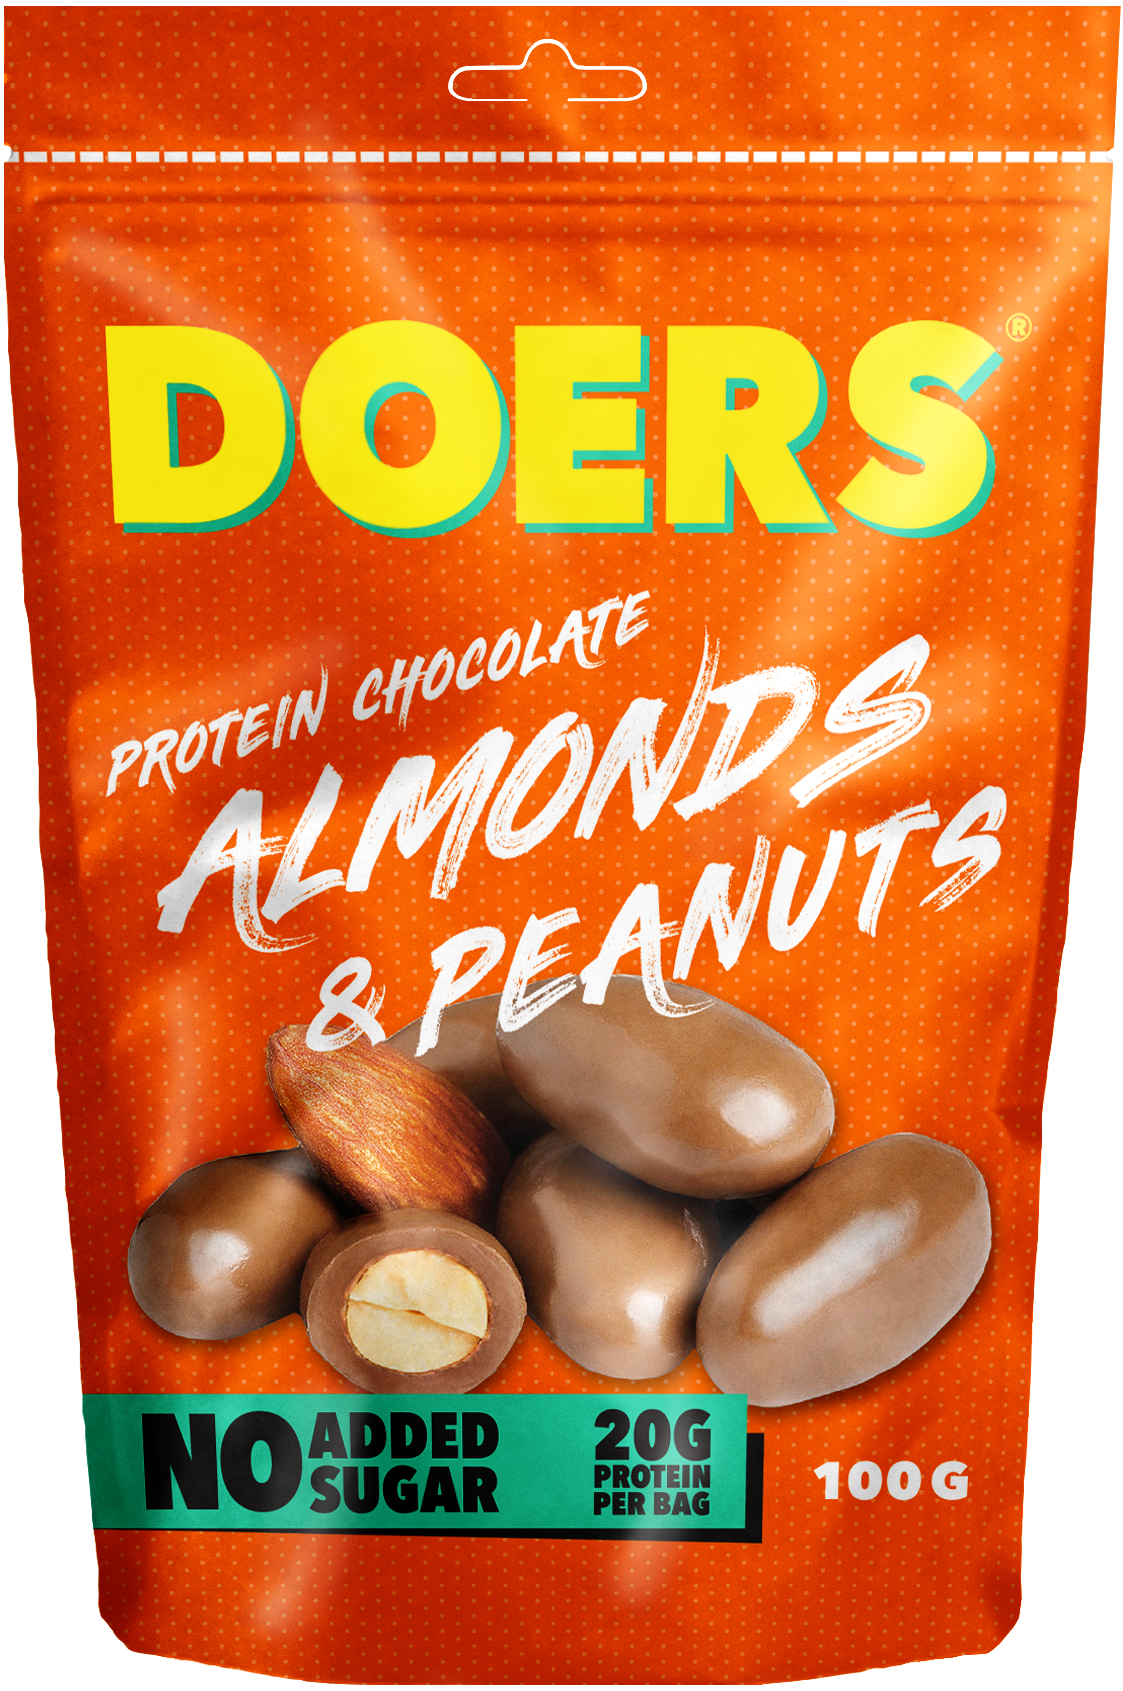 almonds & peanuts - Ingredients: MILKchokolate 49% (cocoa butter, chicory root fiber, oligofructose, cocoa paste, whole MILK powder, skimmed MILK powder, sweetener: erythritol, emulsifier: sunflower lecithin, sweetener: steviol glycosides, natural vanilla aroma, natural aroma) PEANUTS 25%, ALMOND 20%, protein (hydrolyzed gelatin) , salt, glazing agent: gum arabic, shellac.Nutritional value per 100g Energy 531.8 kcal / 2227.5 kJFett 42.1g, of which saturated fat 14.1g Carbohydrates 14.1g, of which sugars 7.7gFibers 18.5gProtein 20gSalt 0.3g